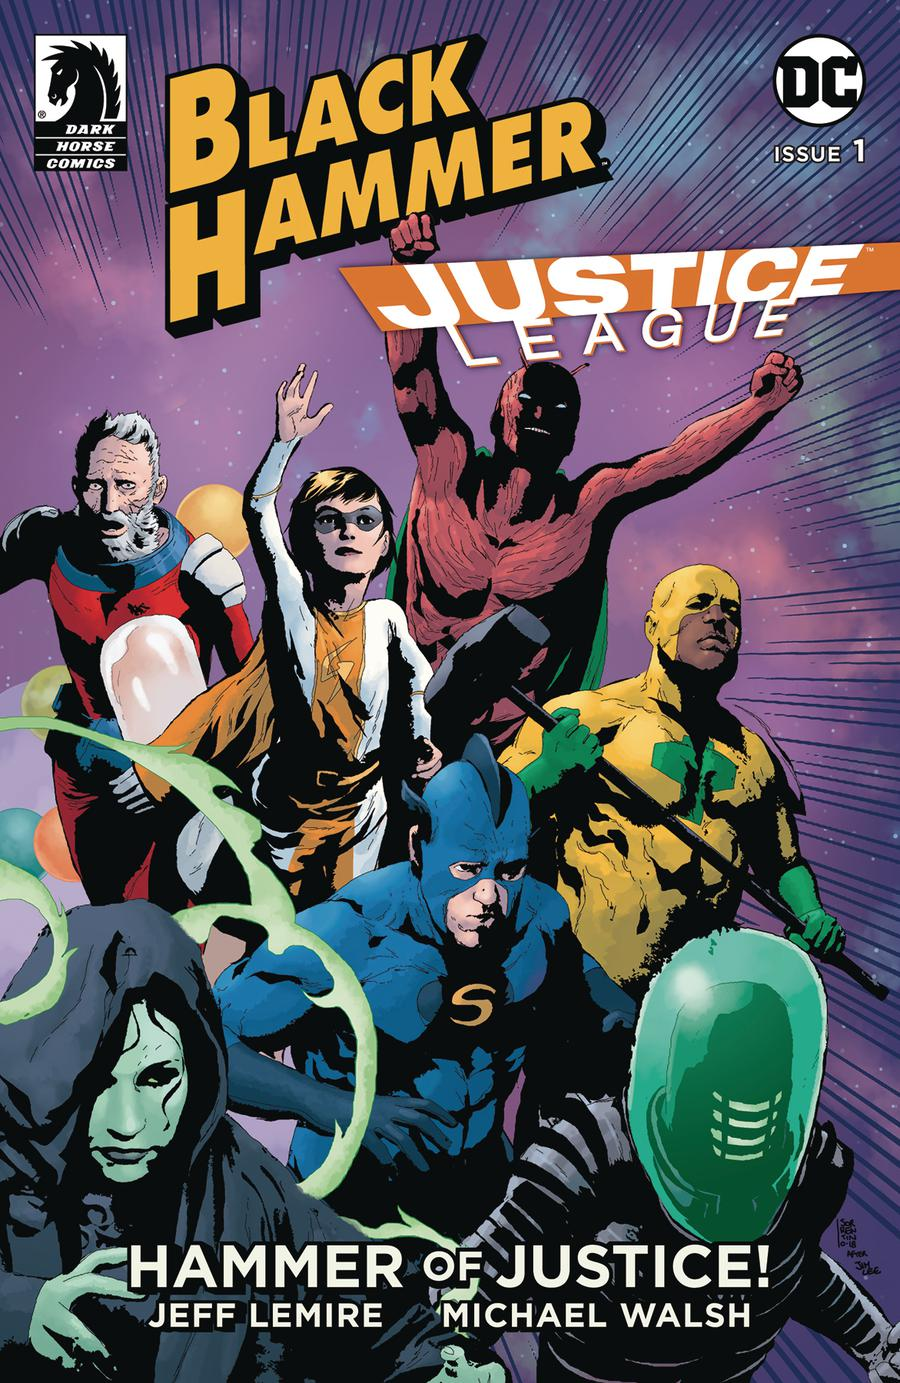 Black Hammer / Justice League: Hammer of Justice # 1b